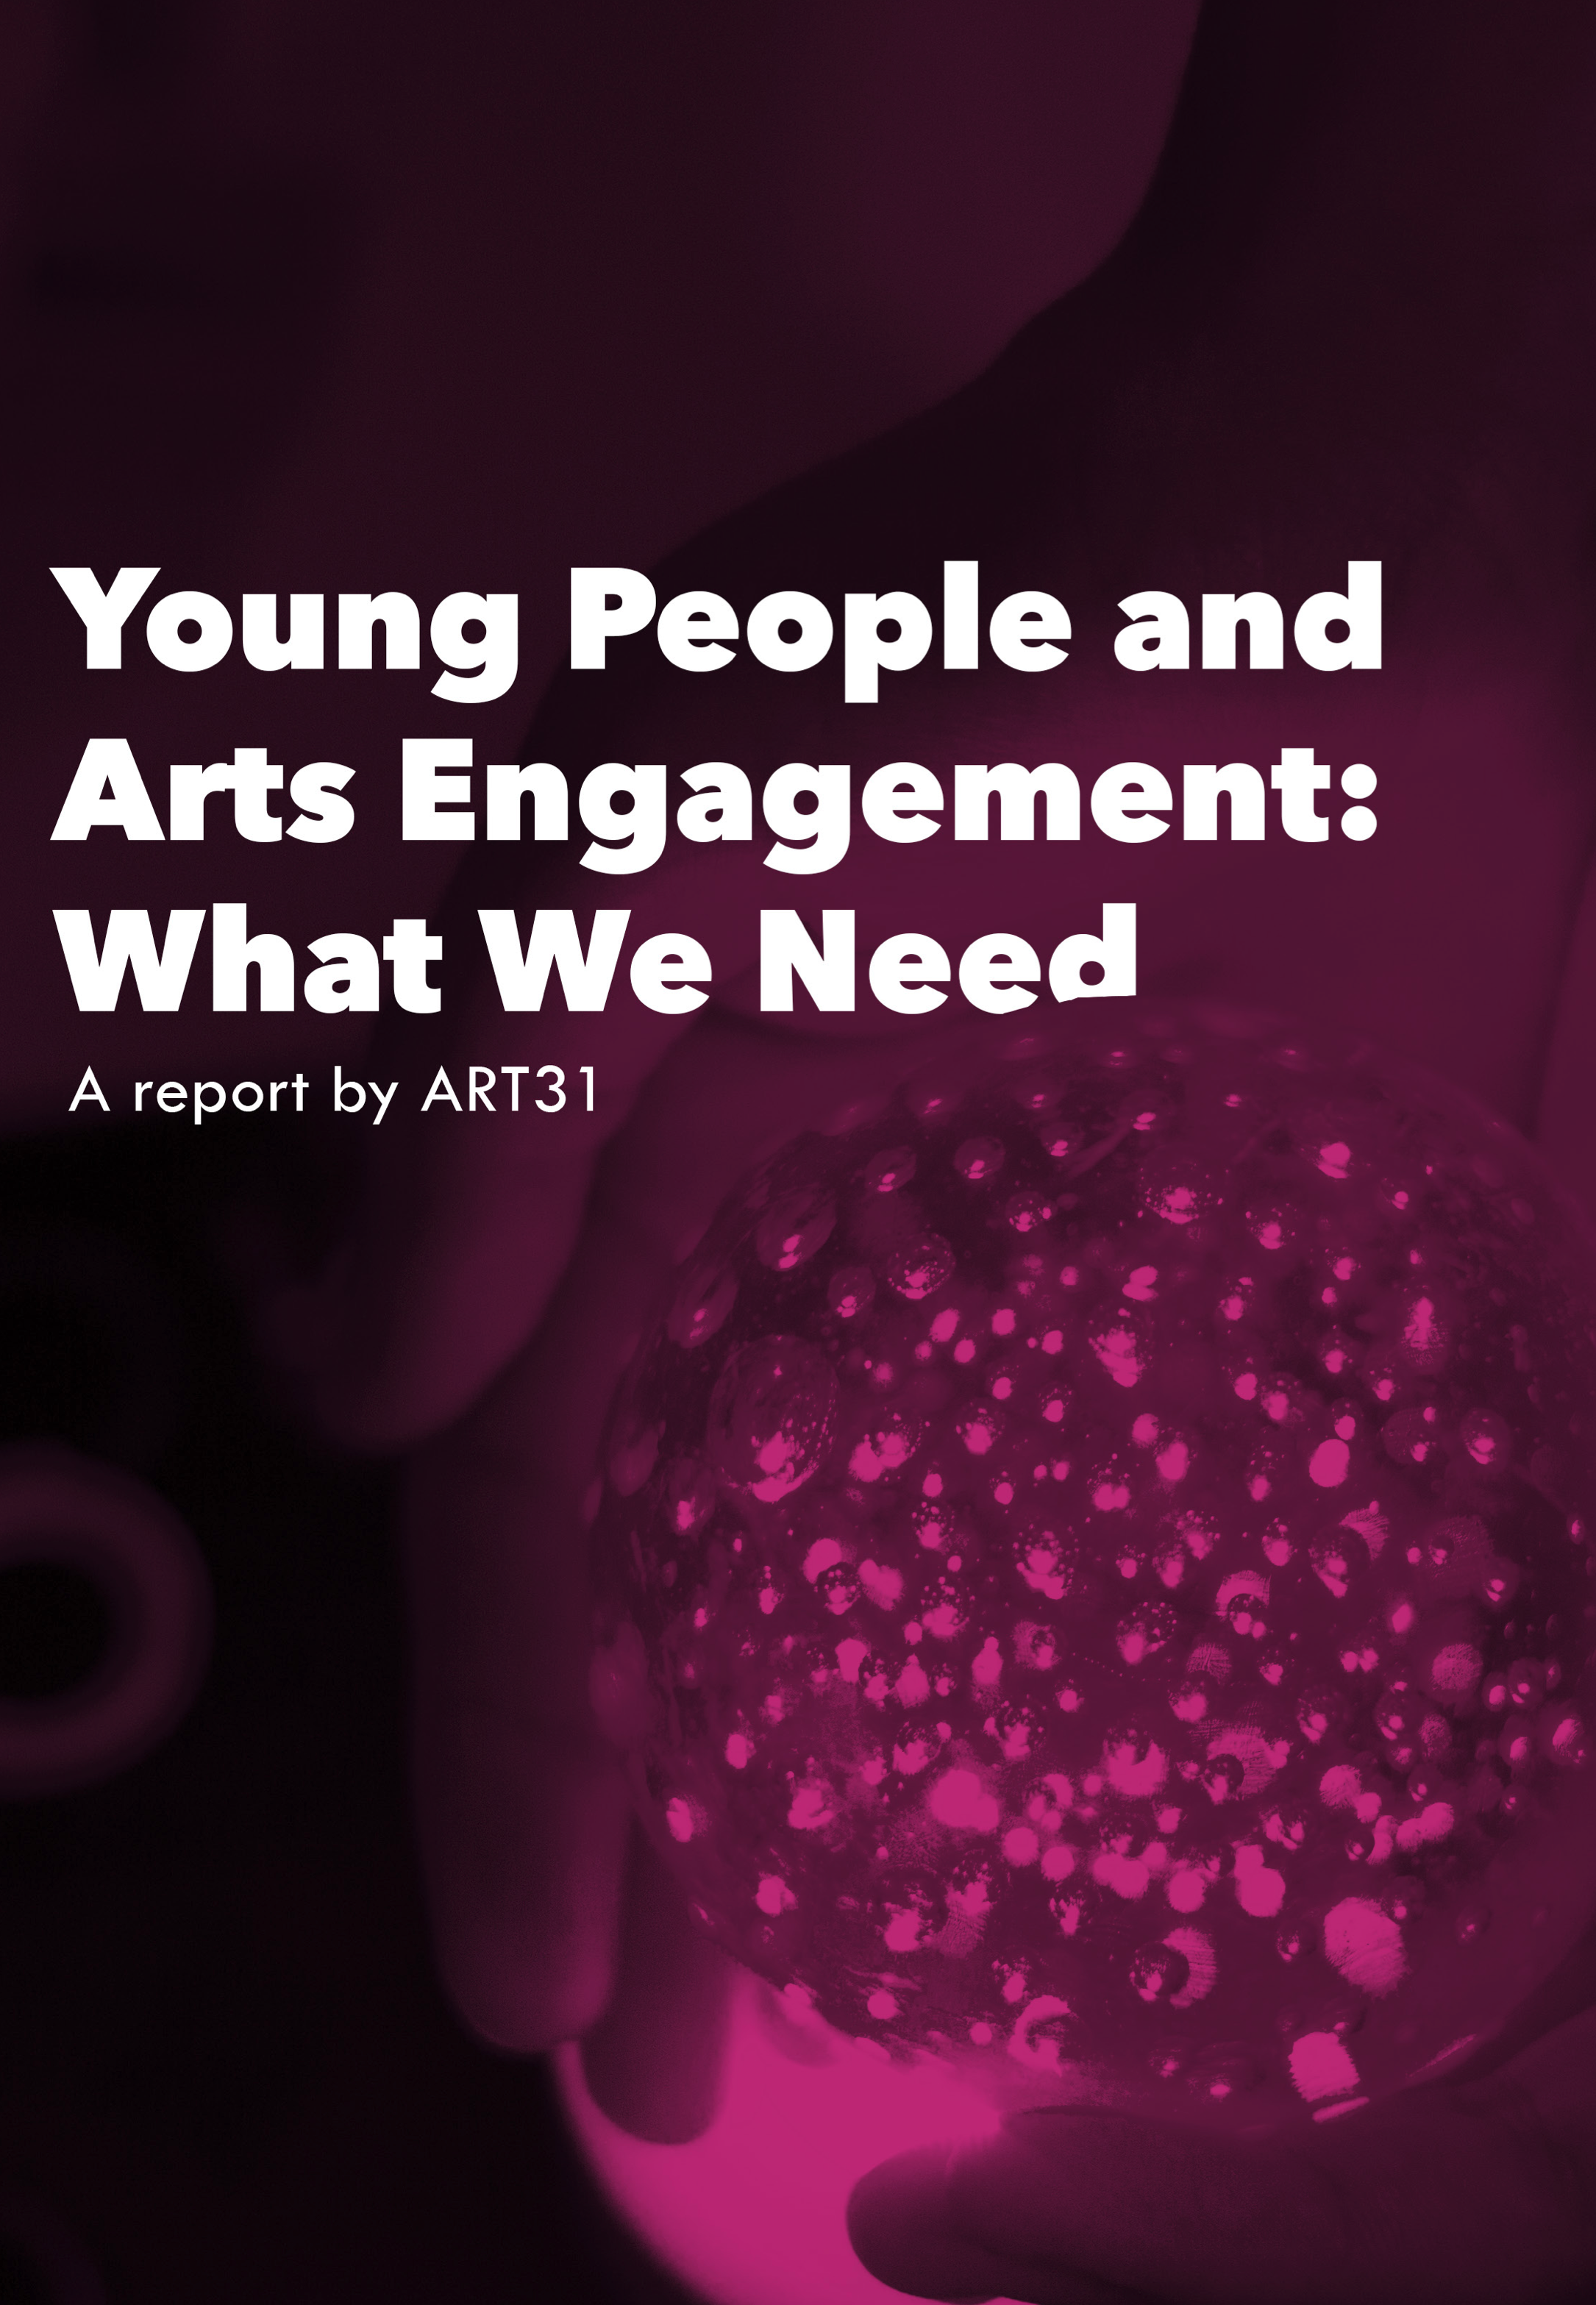 Young People and Arts Engagement - Young People and Arts Engagement: What we need